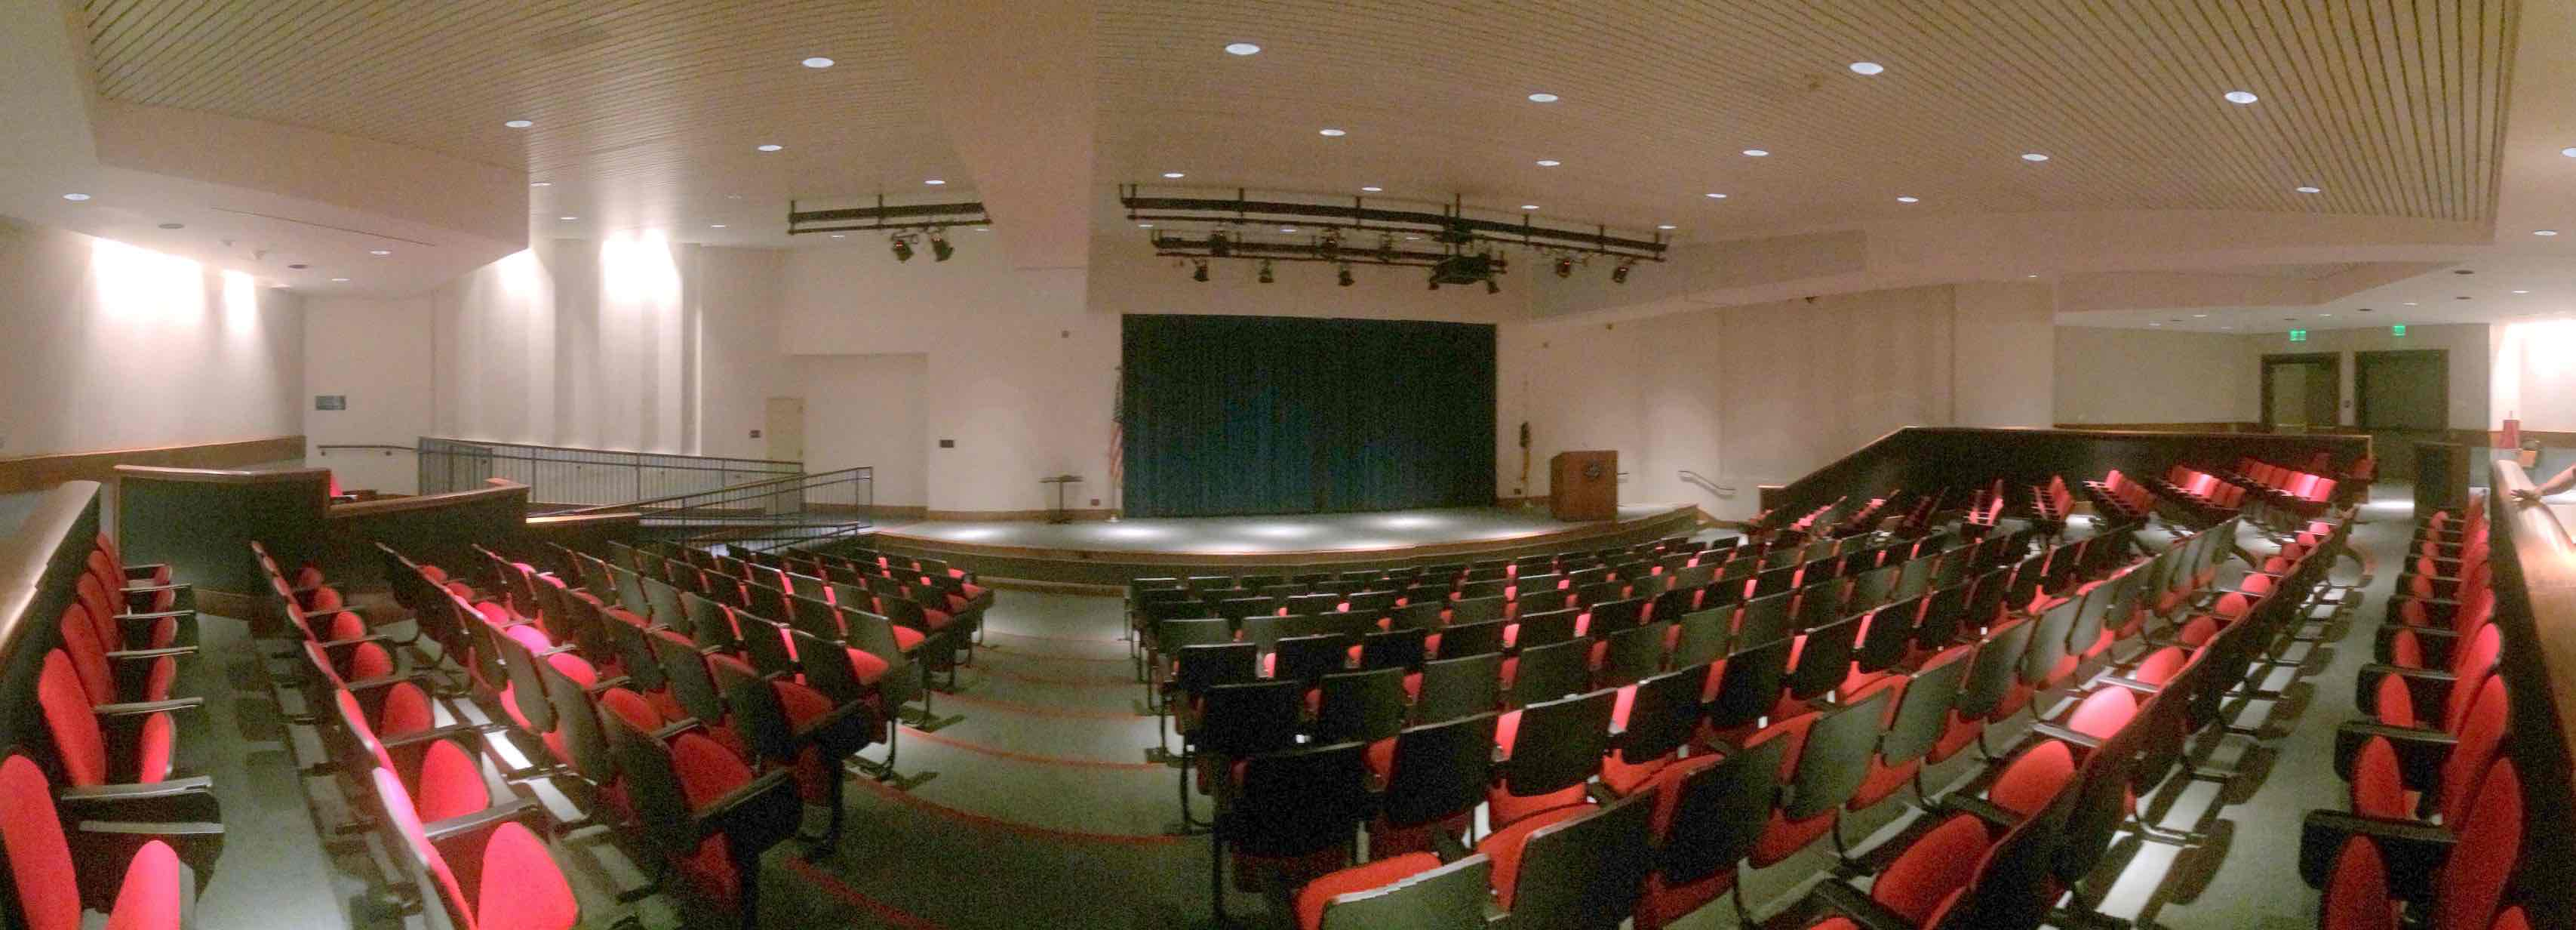 Secretary of State Auditorium